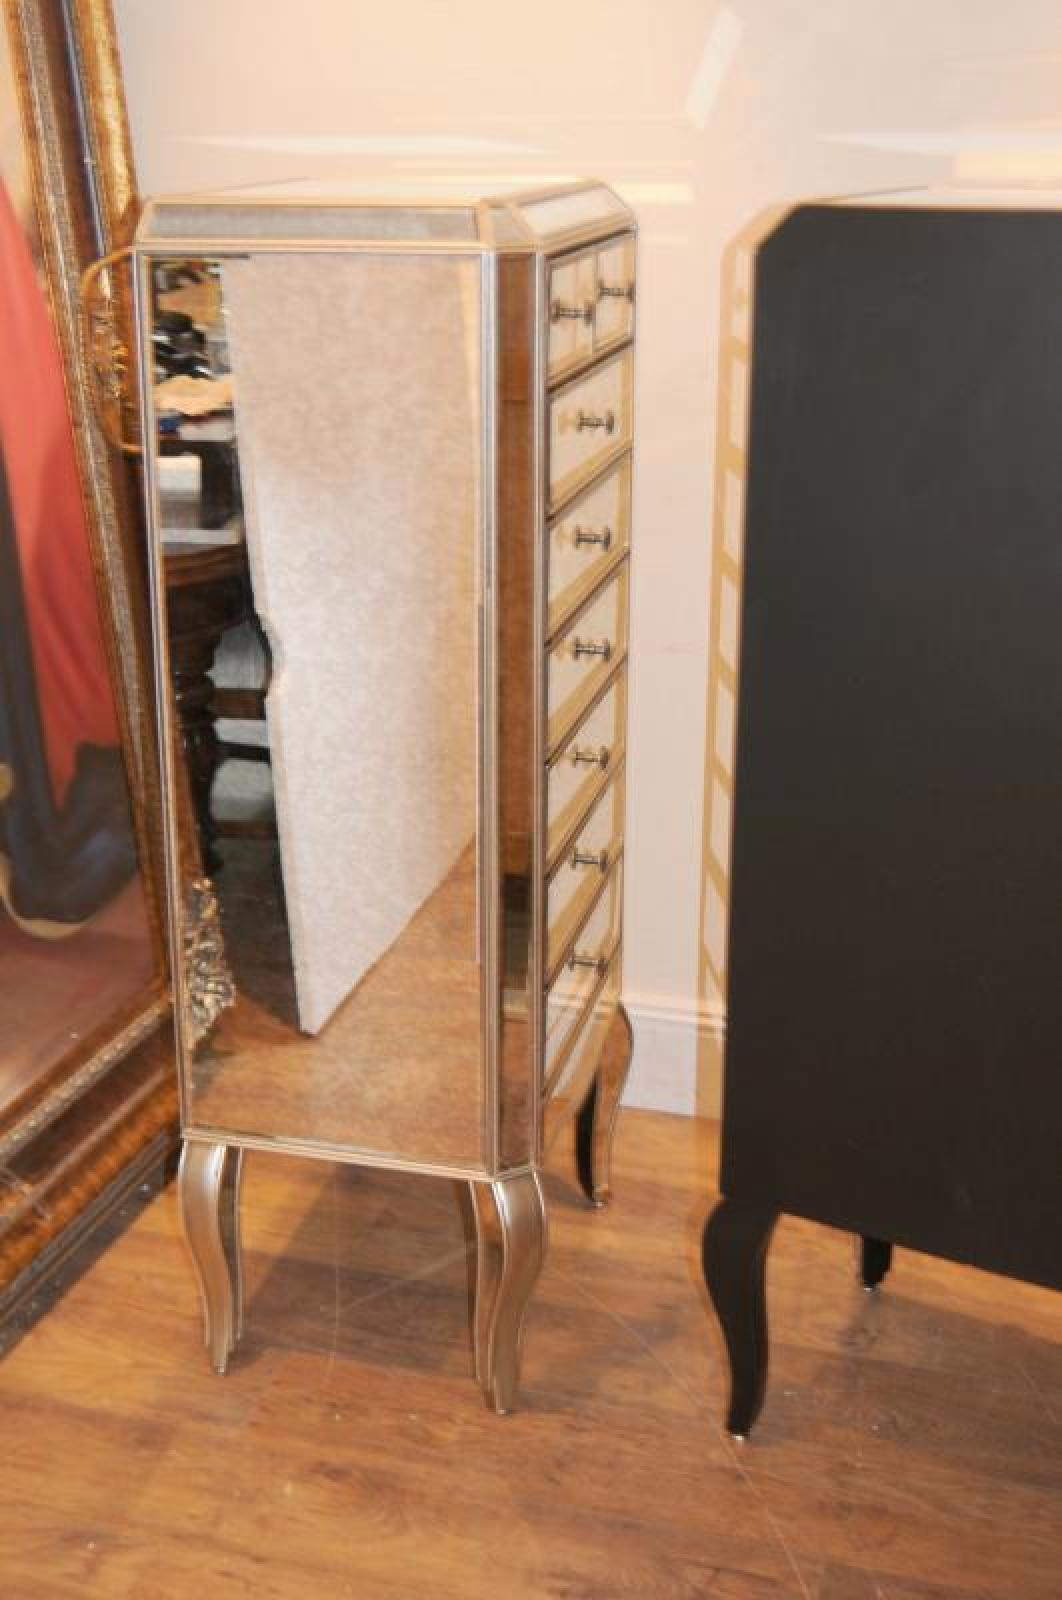 Mirrored Tall Boy Mirrored Chest Of Drawers Tall Boy Commode